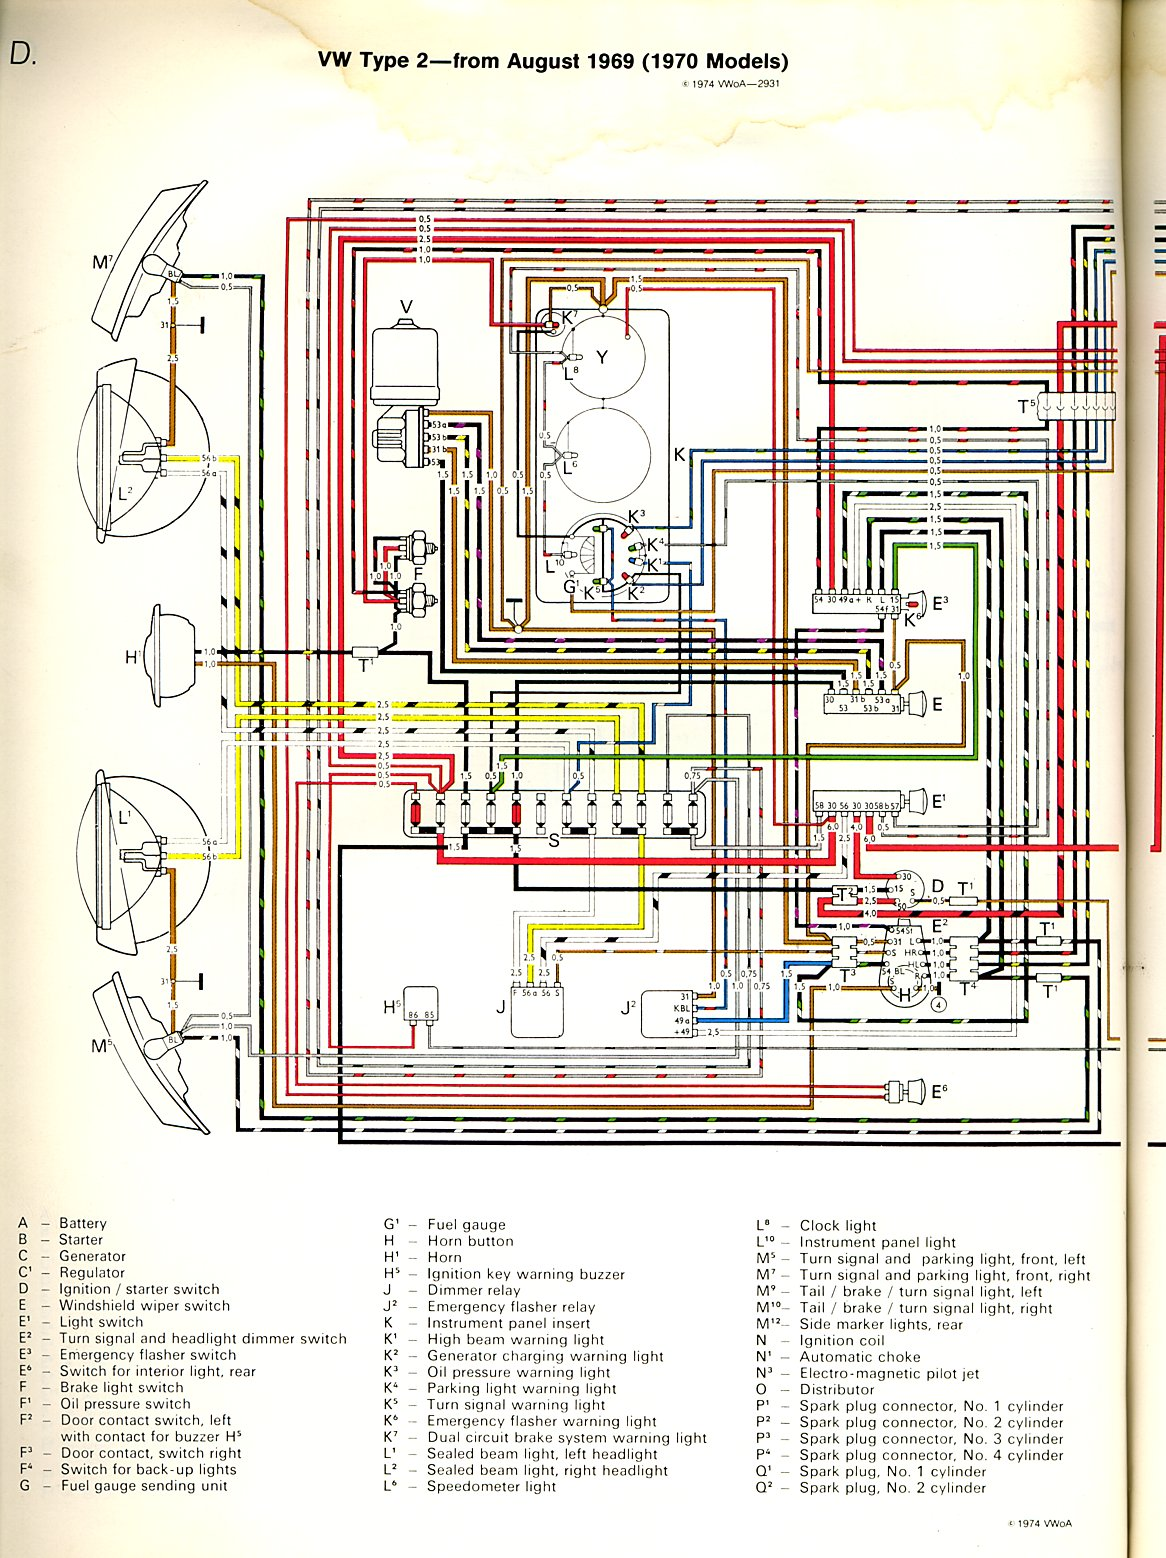 baybus_70a thesamba com type 2 wiring diagrams jaguar e type wiring diagram at alyssarenee.co